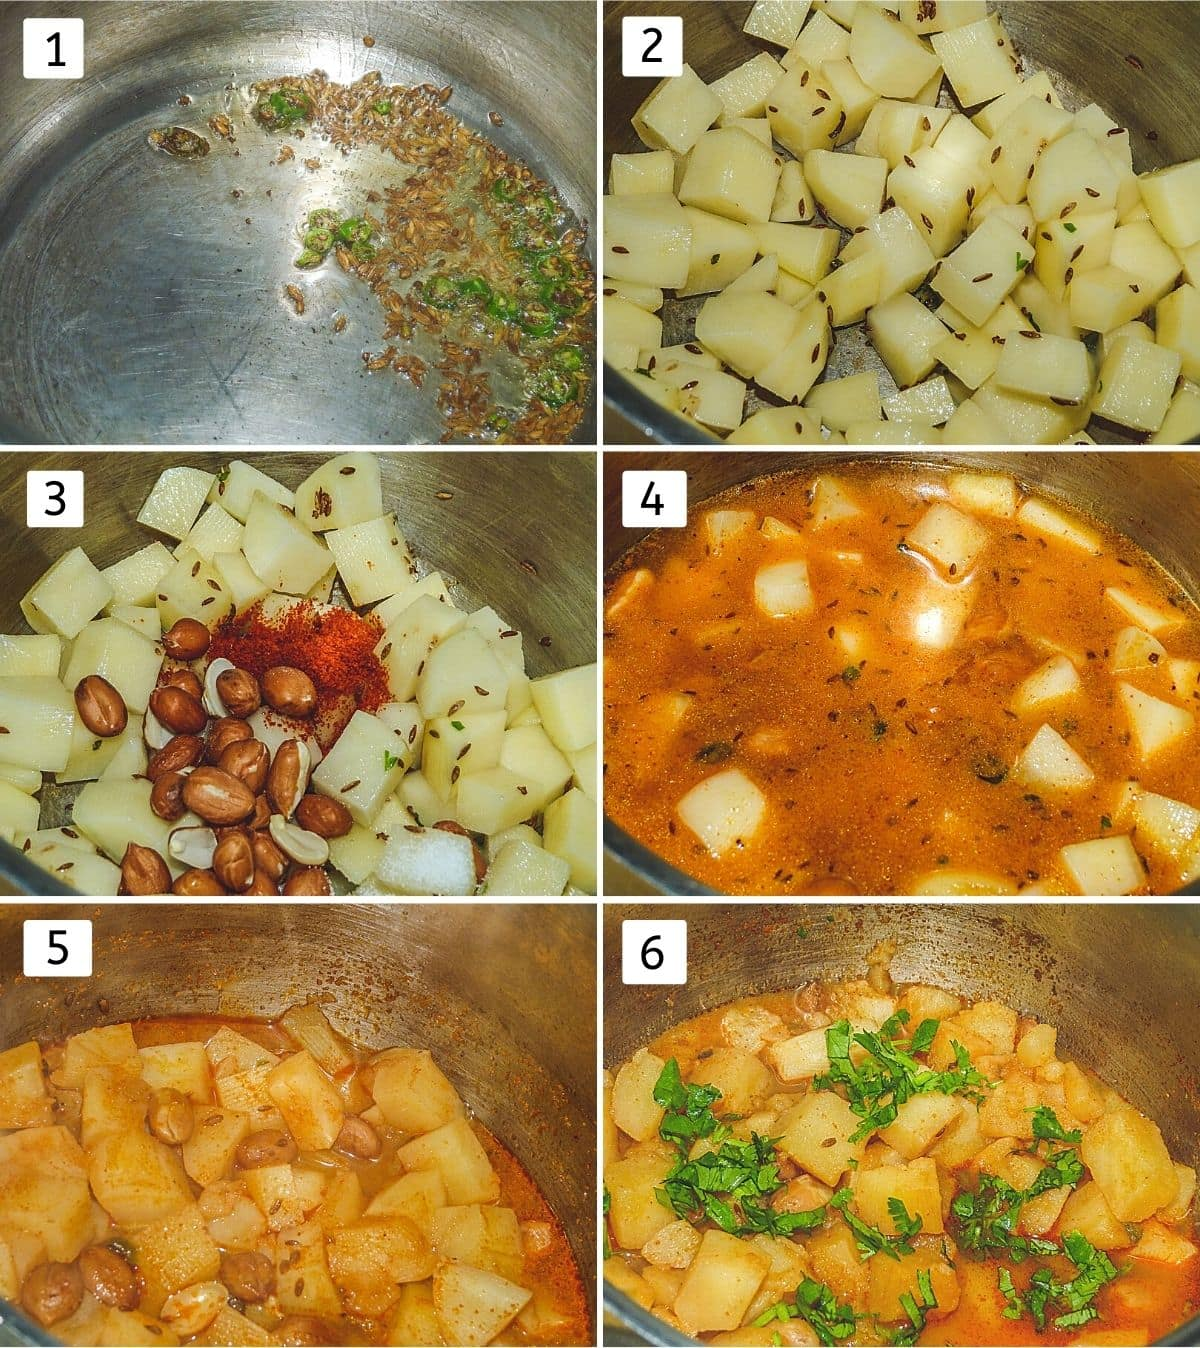 Collage of 6 images showing cumin seeds and chilies in the ghee, added potatoes, peanuts, chili powder, water, pressure cooked, garnish cilantro